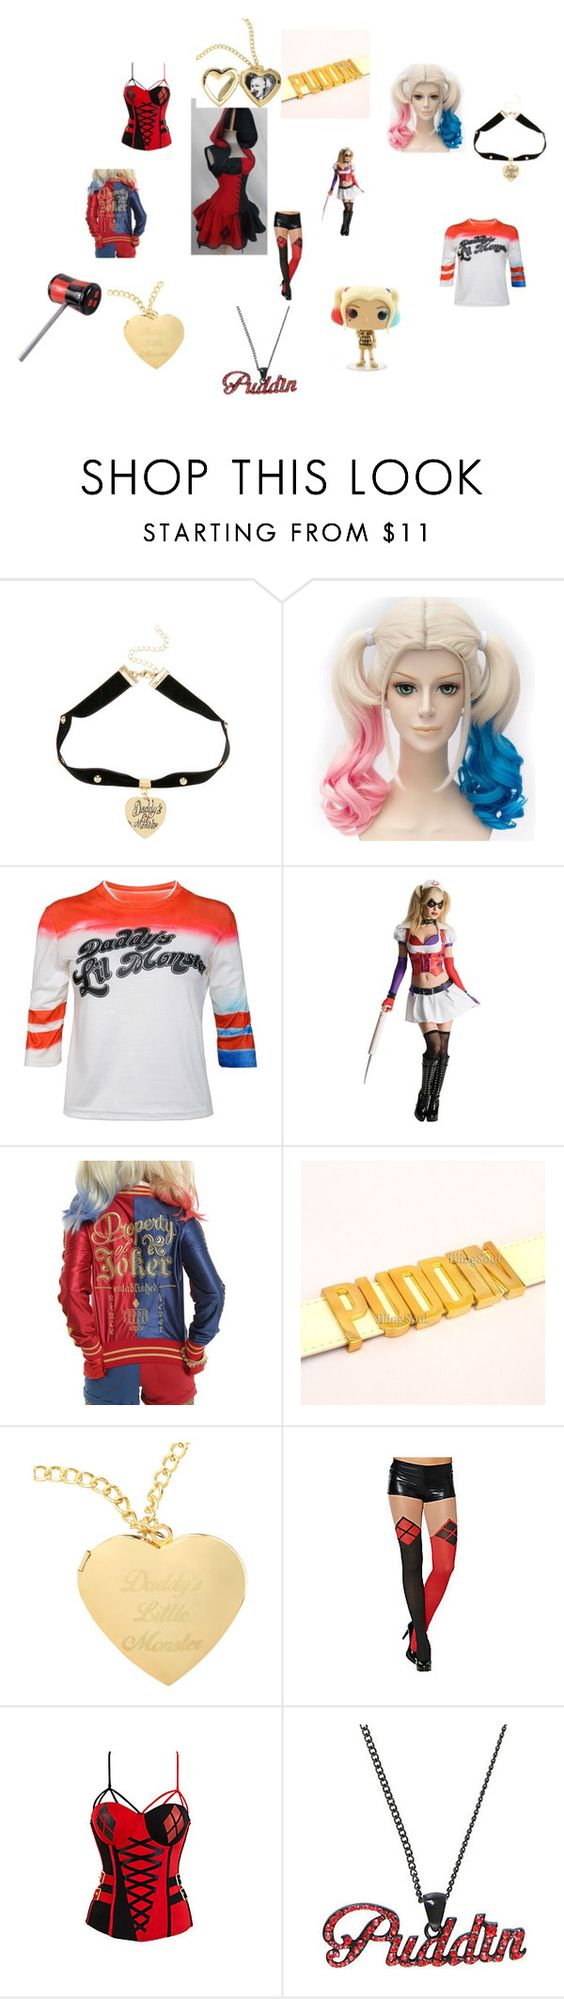 """""""Harley Quinn Nice ta meet cha'"""" by lissy0467 ❤ liked on Polyvore featuring Villain, Dccomics, harleyquinn, SuicideSquad and PUDDIN"""